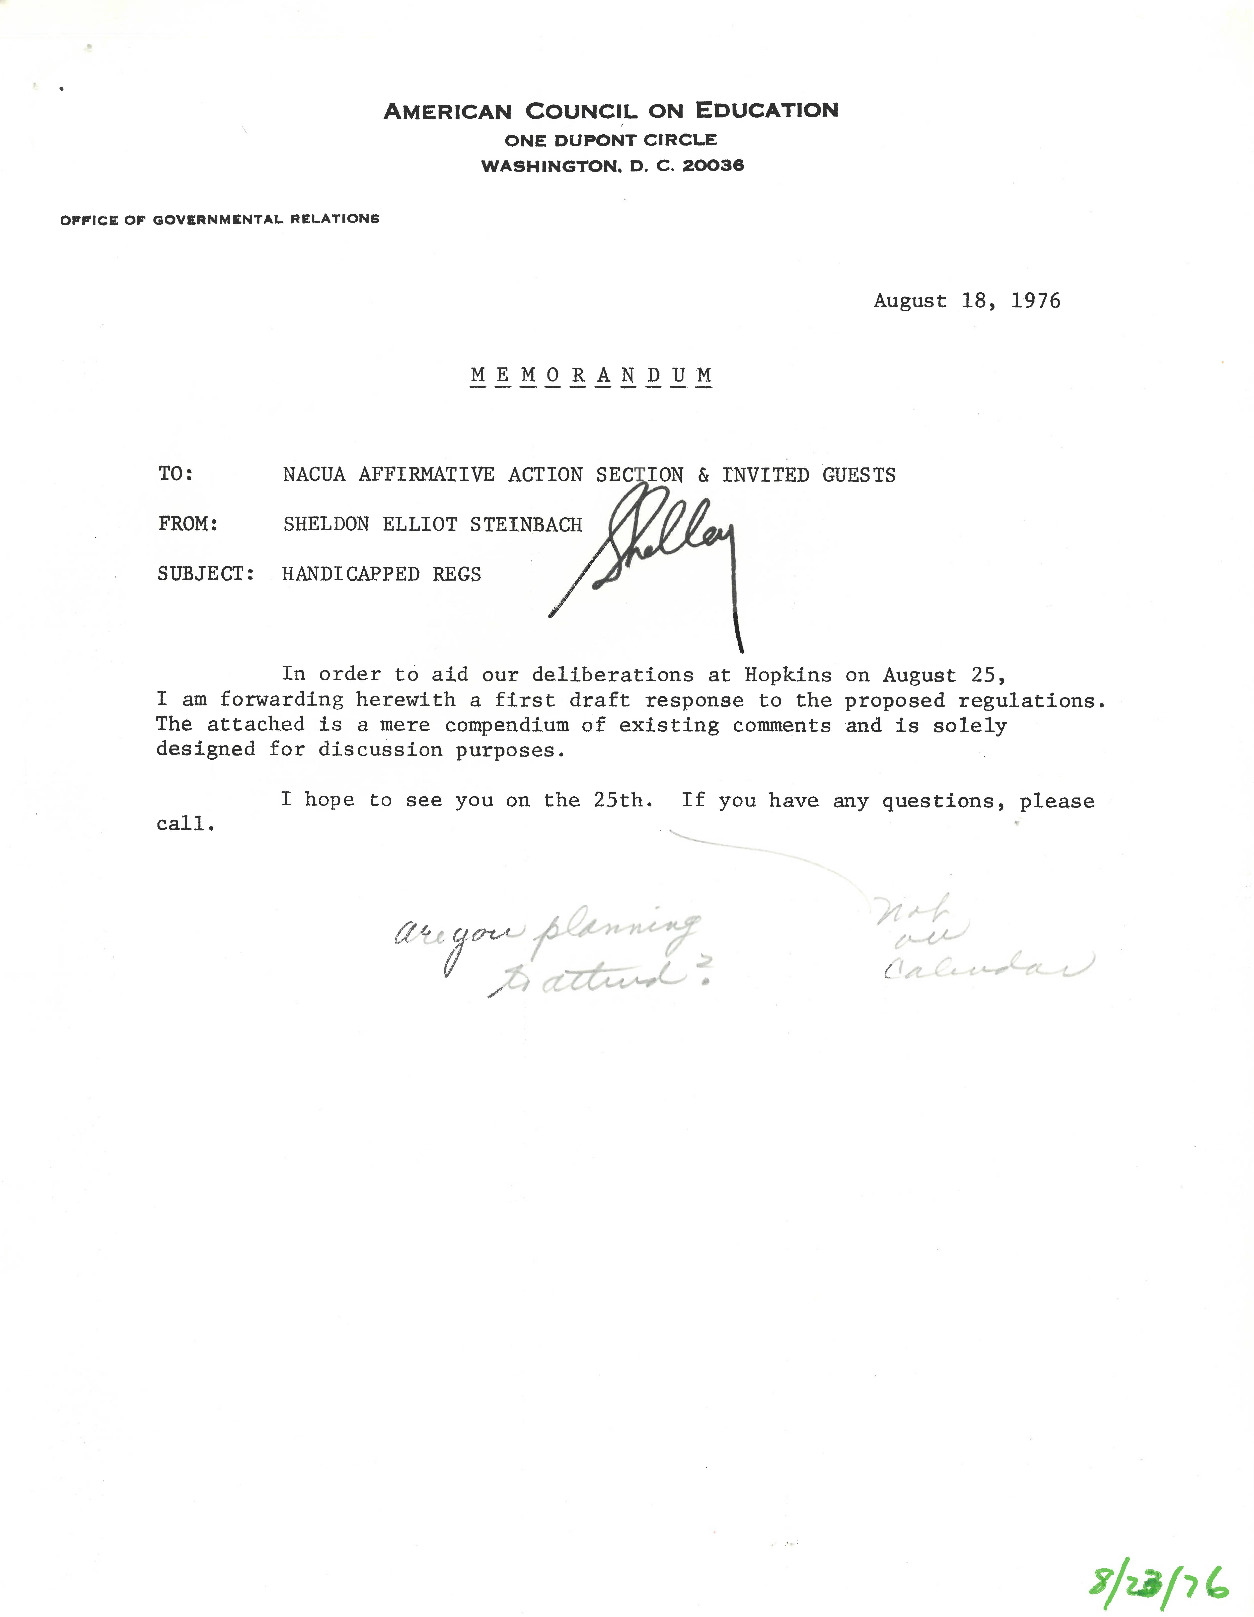 An attachment to an August 18, 1976 memo from Sheldon Steinbach to the National Association of College and University Attorneys (NACUA) Affirmative Action Section. This letter is working discussion draft of the American Council on Education (ACE)'s letter to Mr. Martin Gerry, a lawyer in the Office for Civil Rights in the Department of Health, Education, and Welfare (HEW). Throughout most of the draft, ACE discusses its issues with the proposed legislation, including several objections to the foundation of equal access.